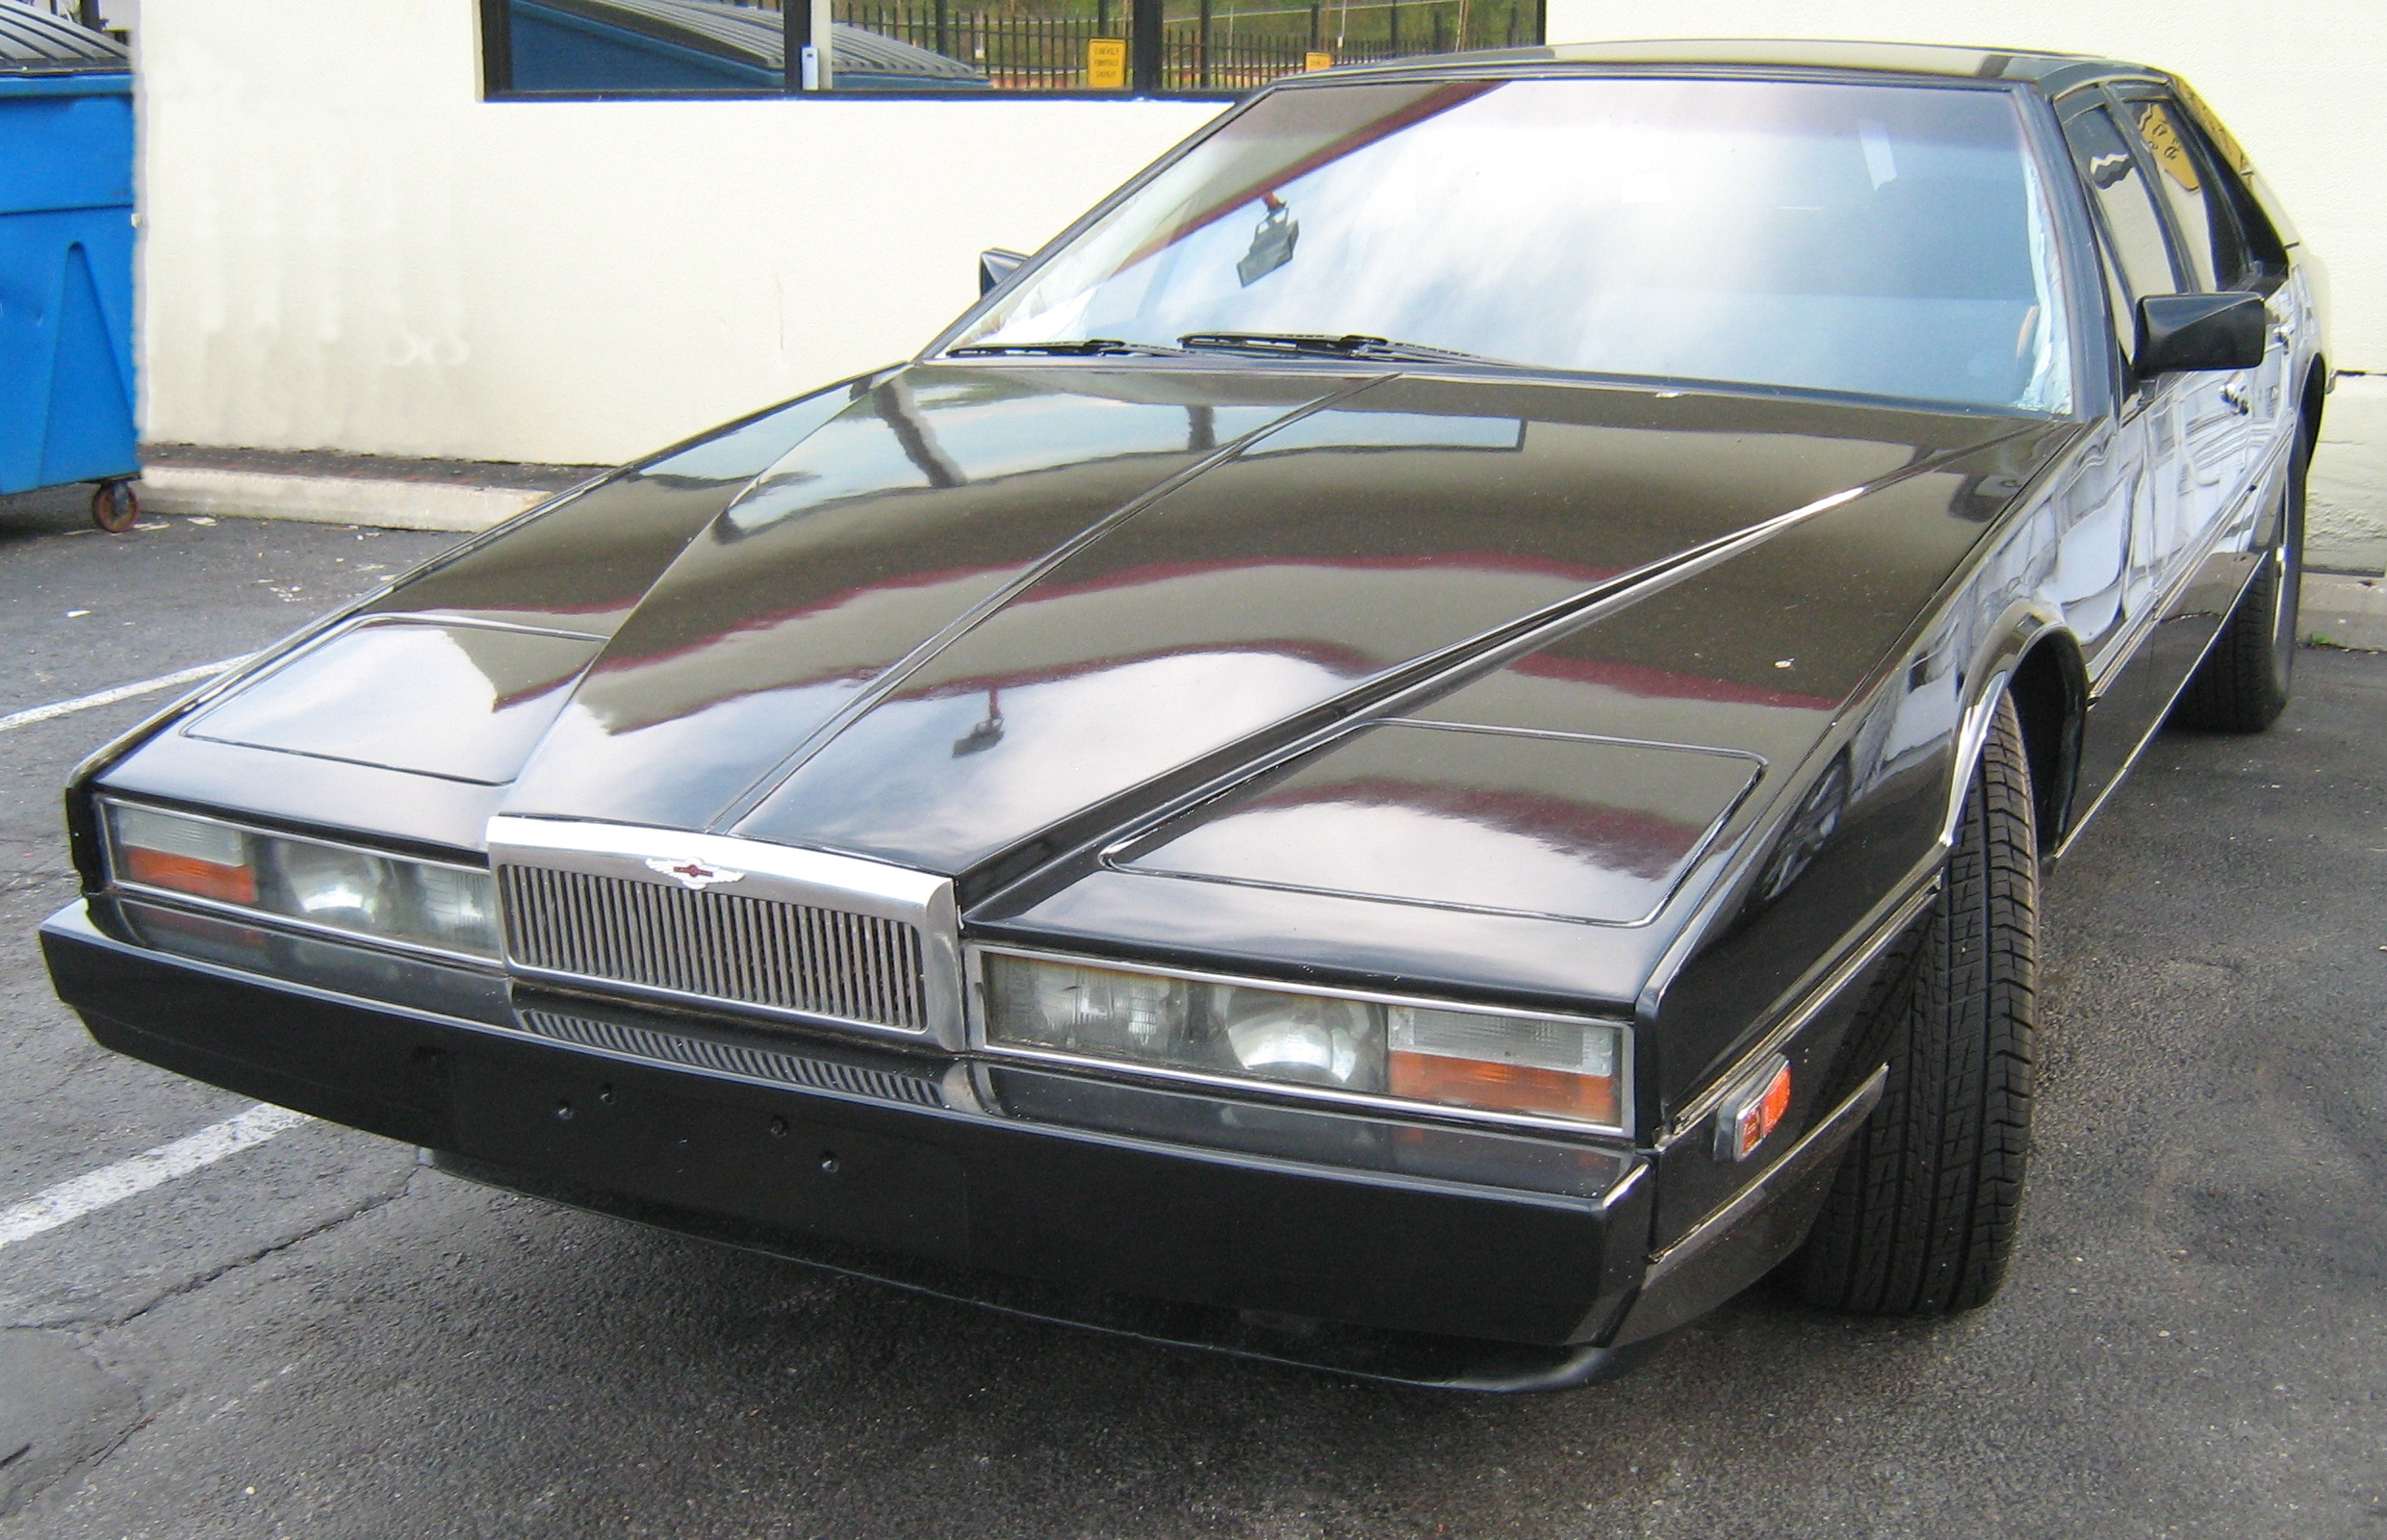 Description Aston Martin Lagonda mdf.jpg